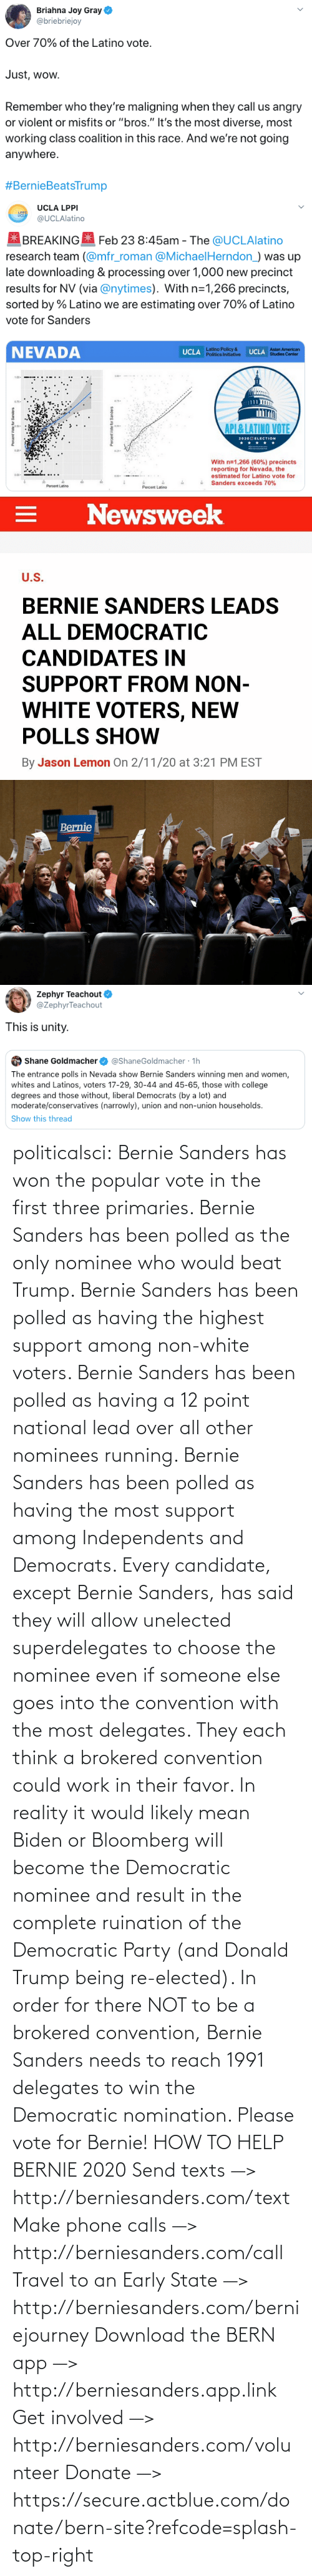 Bernie Sanders, Donald Trump, and Party: politicalsci: Bernie Sanders has won the popular vote in the first three primaries. Bernie Sanders has  been polled as the only nominee who would beat Trump. Bernie Sanders  has been polled as having the highest support among non-white voters.  Bernie Sanders has been polled as having a 12 point national lead over  all other nominees running. Bernie Sanders has been polled as having the most support among Independents and Democrats.  Every candidate, except Bernie Sanders, has said they will allow  unelected superdelegates to choose the nominee even if someone else goes  into the convention with the most delegates. They each think a brokered  convention could work in their favor. In  reality it would likely mean Biden or Bloomberg will become the  Democratic nominee and result in the complete ruination of the  Democratic Party (and Donald Trump being re-elected). In order for there  NOT to be a brokered  convention, Bernie Sanders needs to reach 1991 delegates to win the  Democratic  nomination. Please vote for Bernie!  HOW TO HELP BERNIE 2020 Send texts —> http://berniesanders.com/text  Make phone calls —> http://berniesanders.com/call  Travel to an Early State —> http://berniesanders.com/berniejourney  Download the BERN app —> http://berniesanders.app.link  Get involved —> http://berniesanders.com/volunteer Donate —> https://secure.actblue.com/donate/bern-site?refcode=splash-top-right